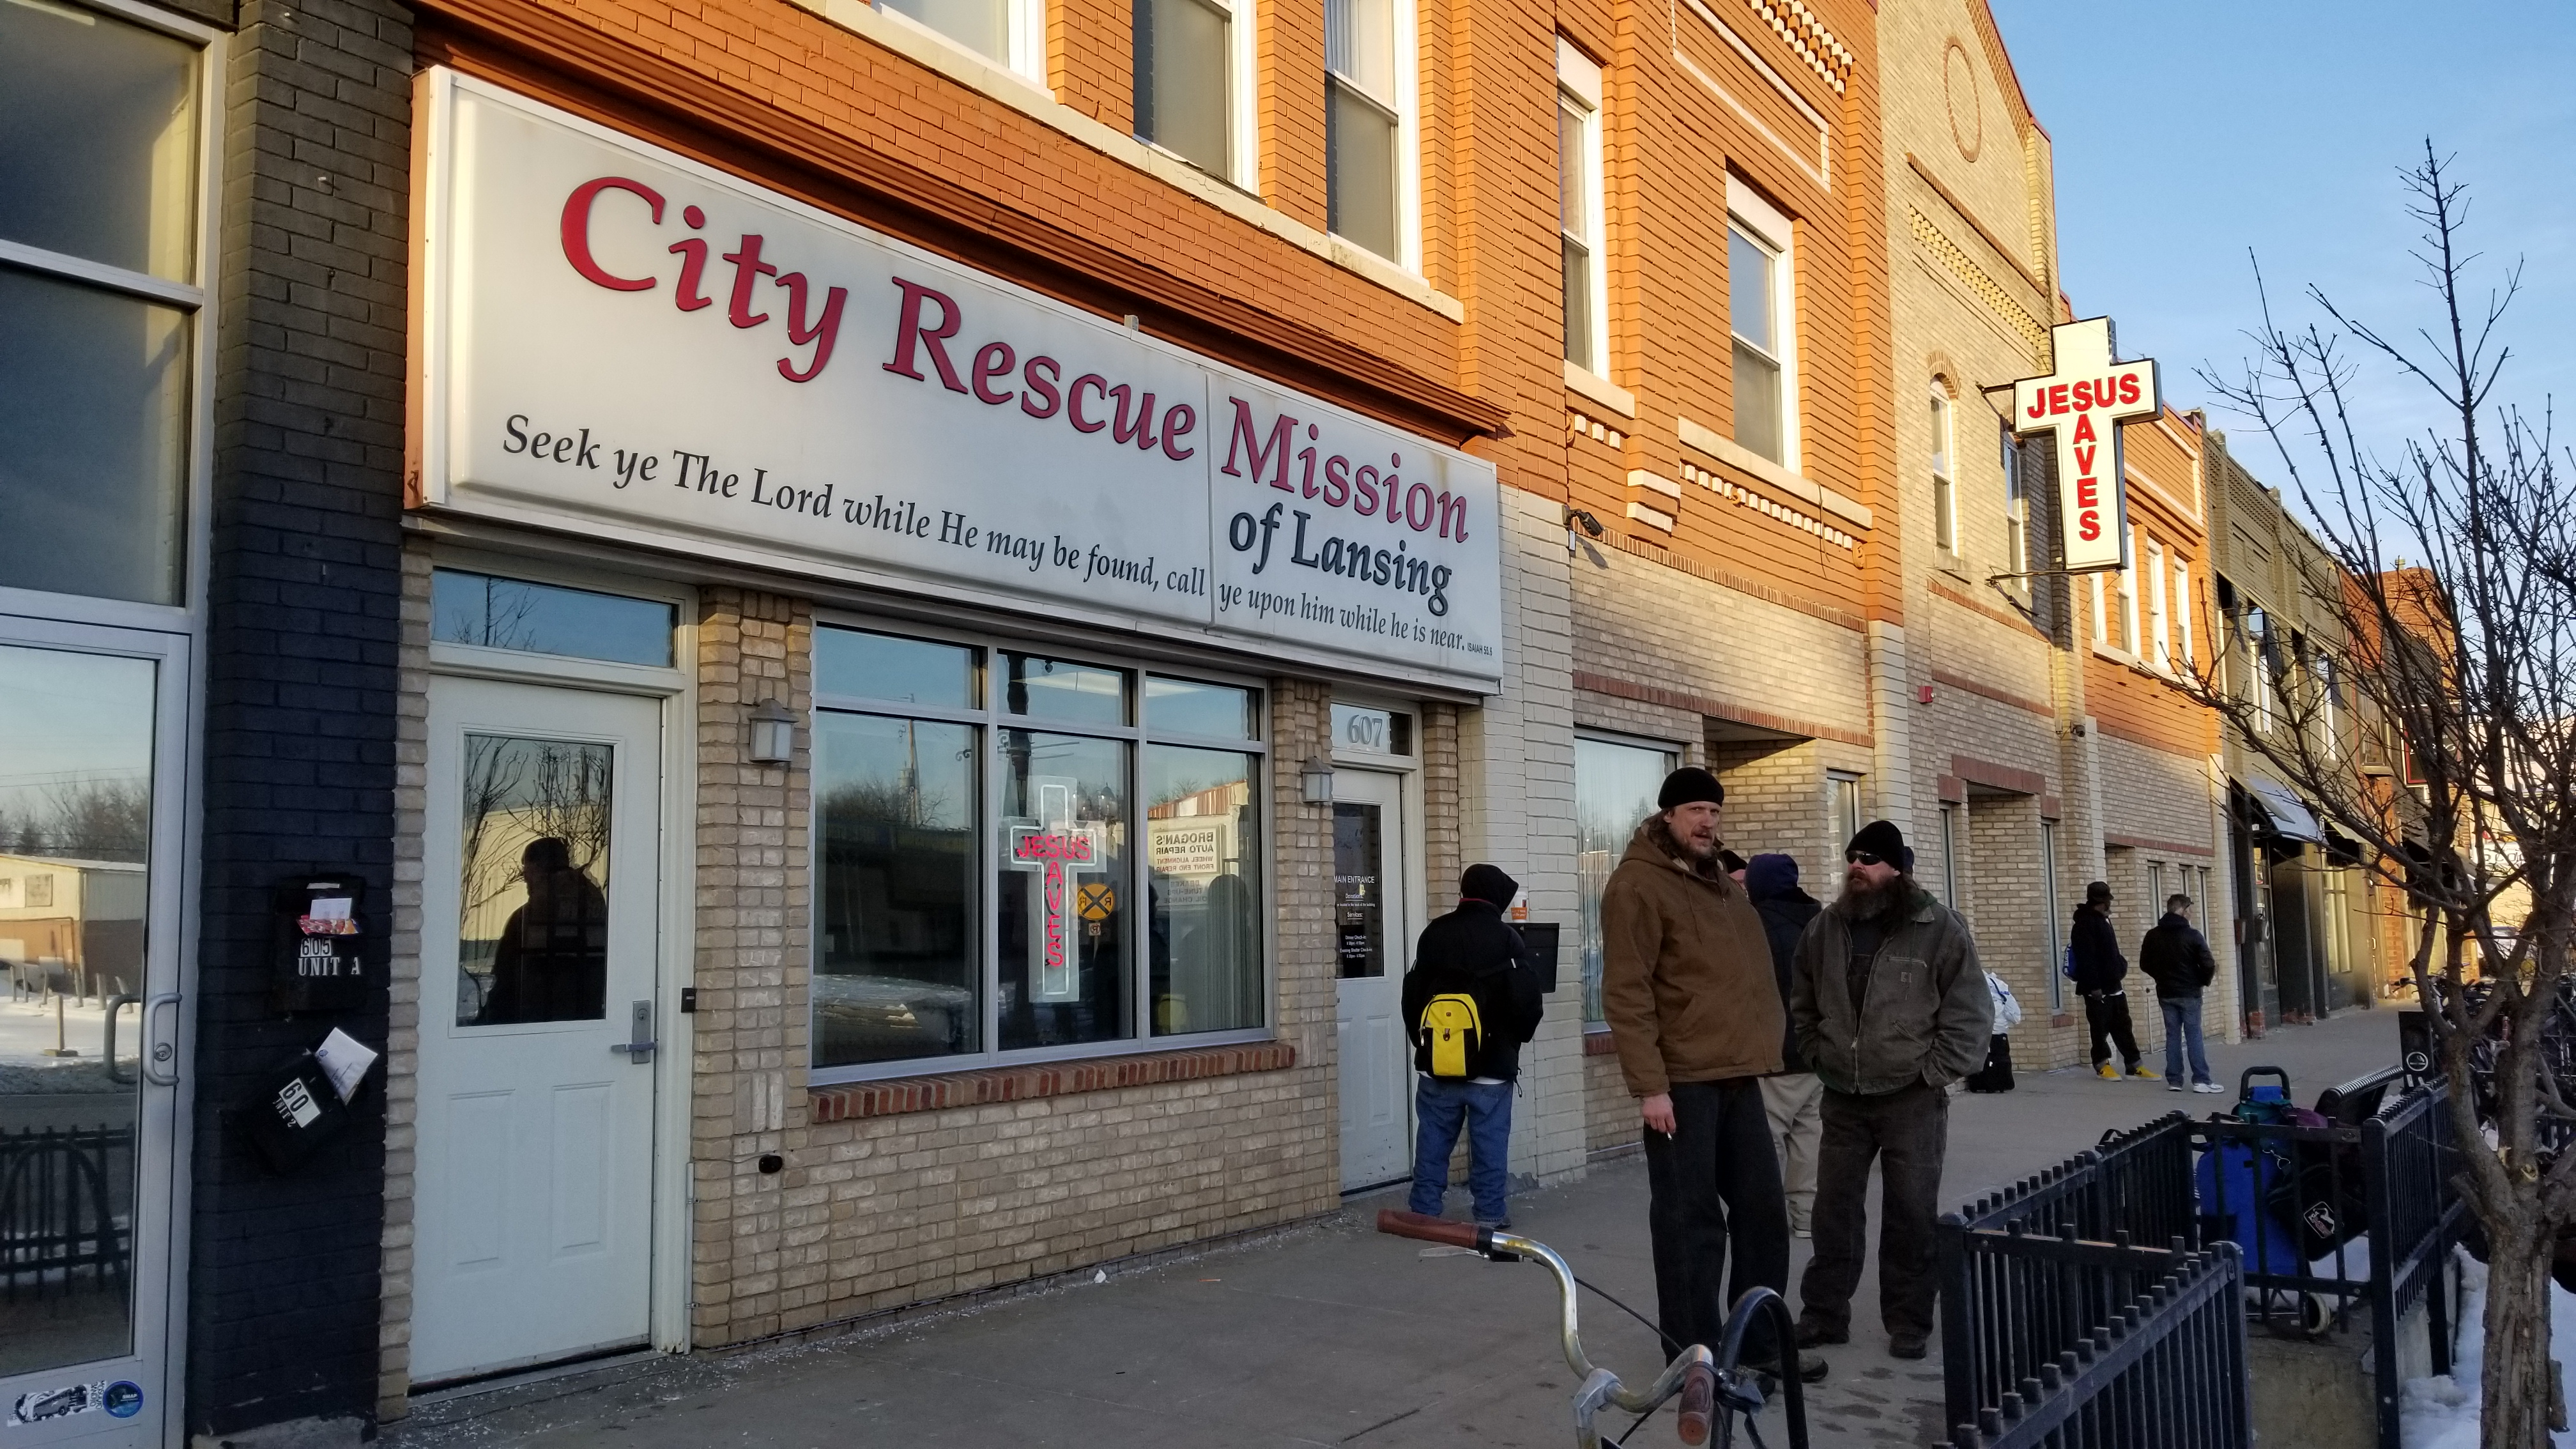 c646a35c9 The City Rescue Mission located at 607 E Michigan Avenue in Lansing